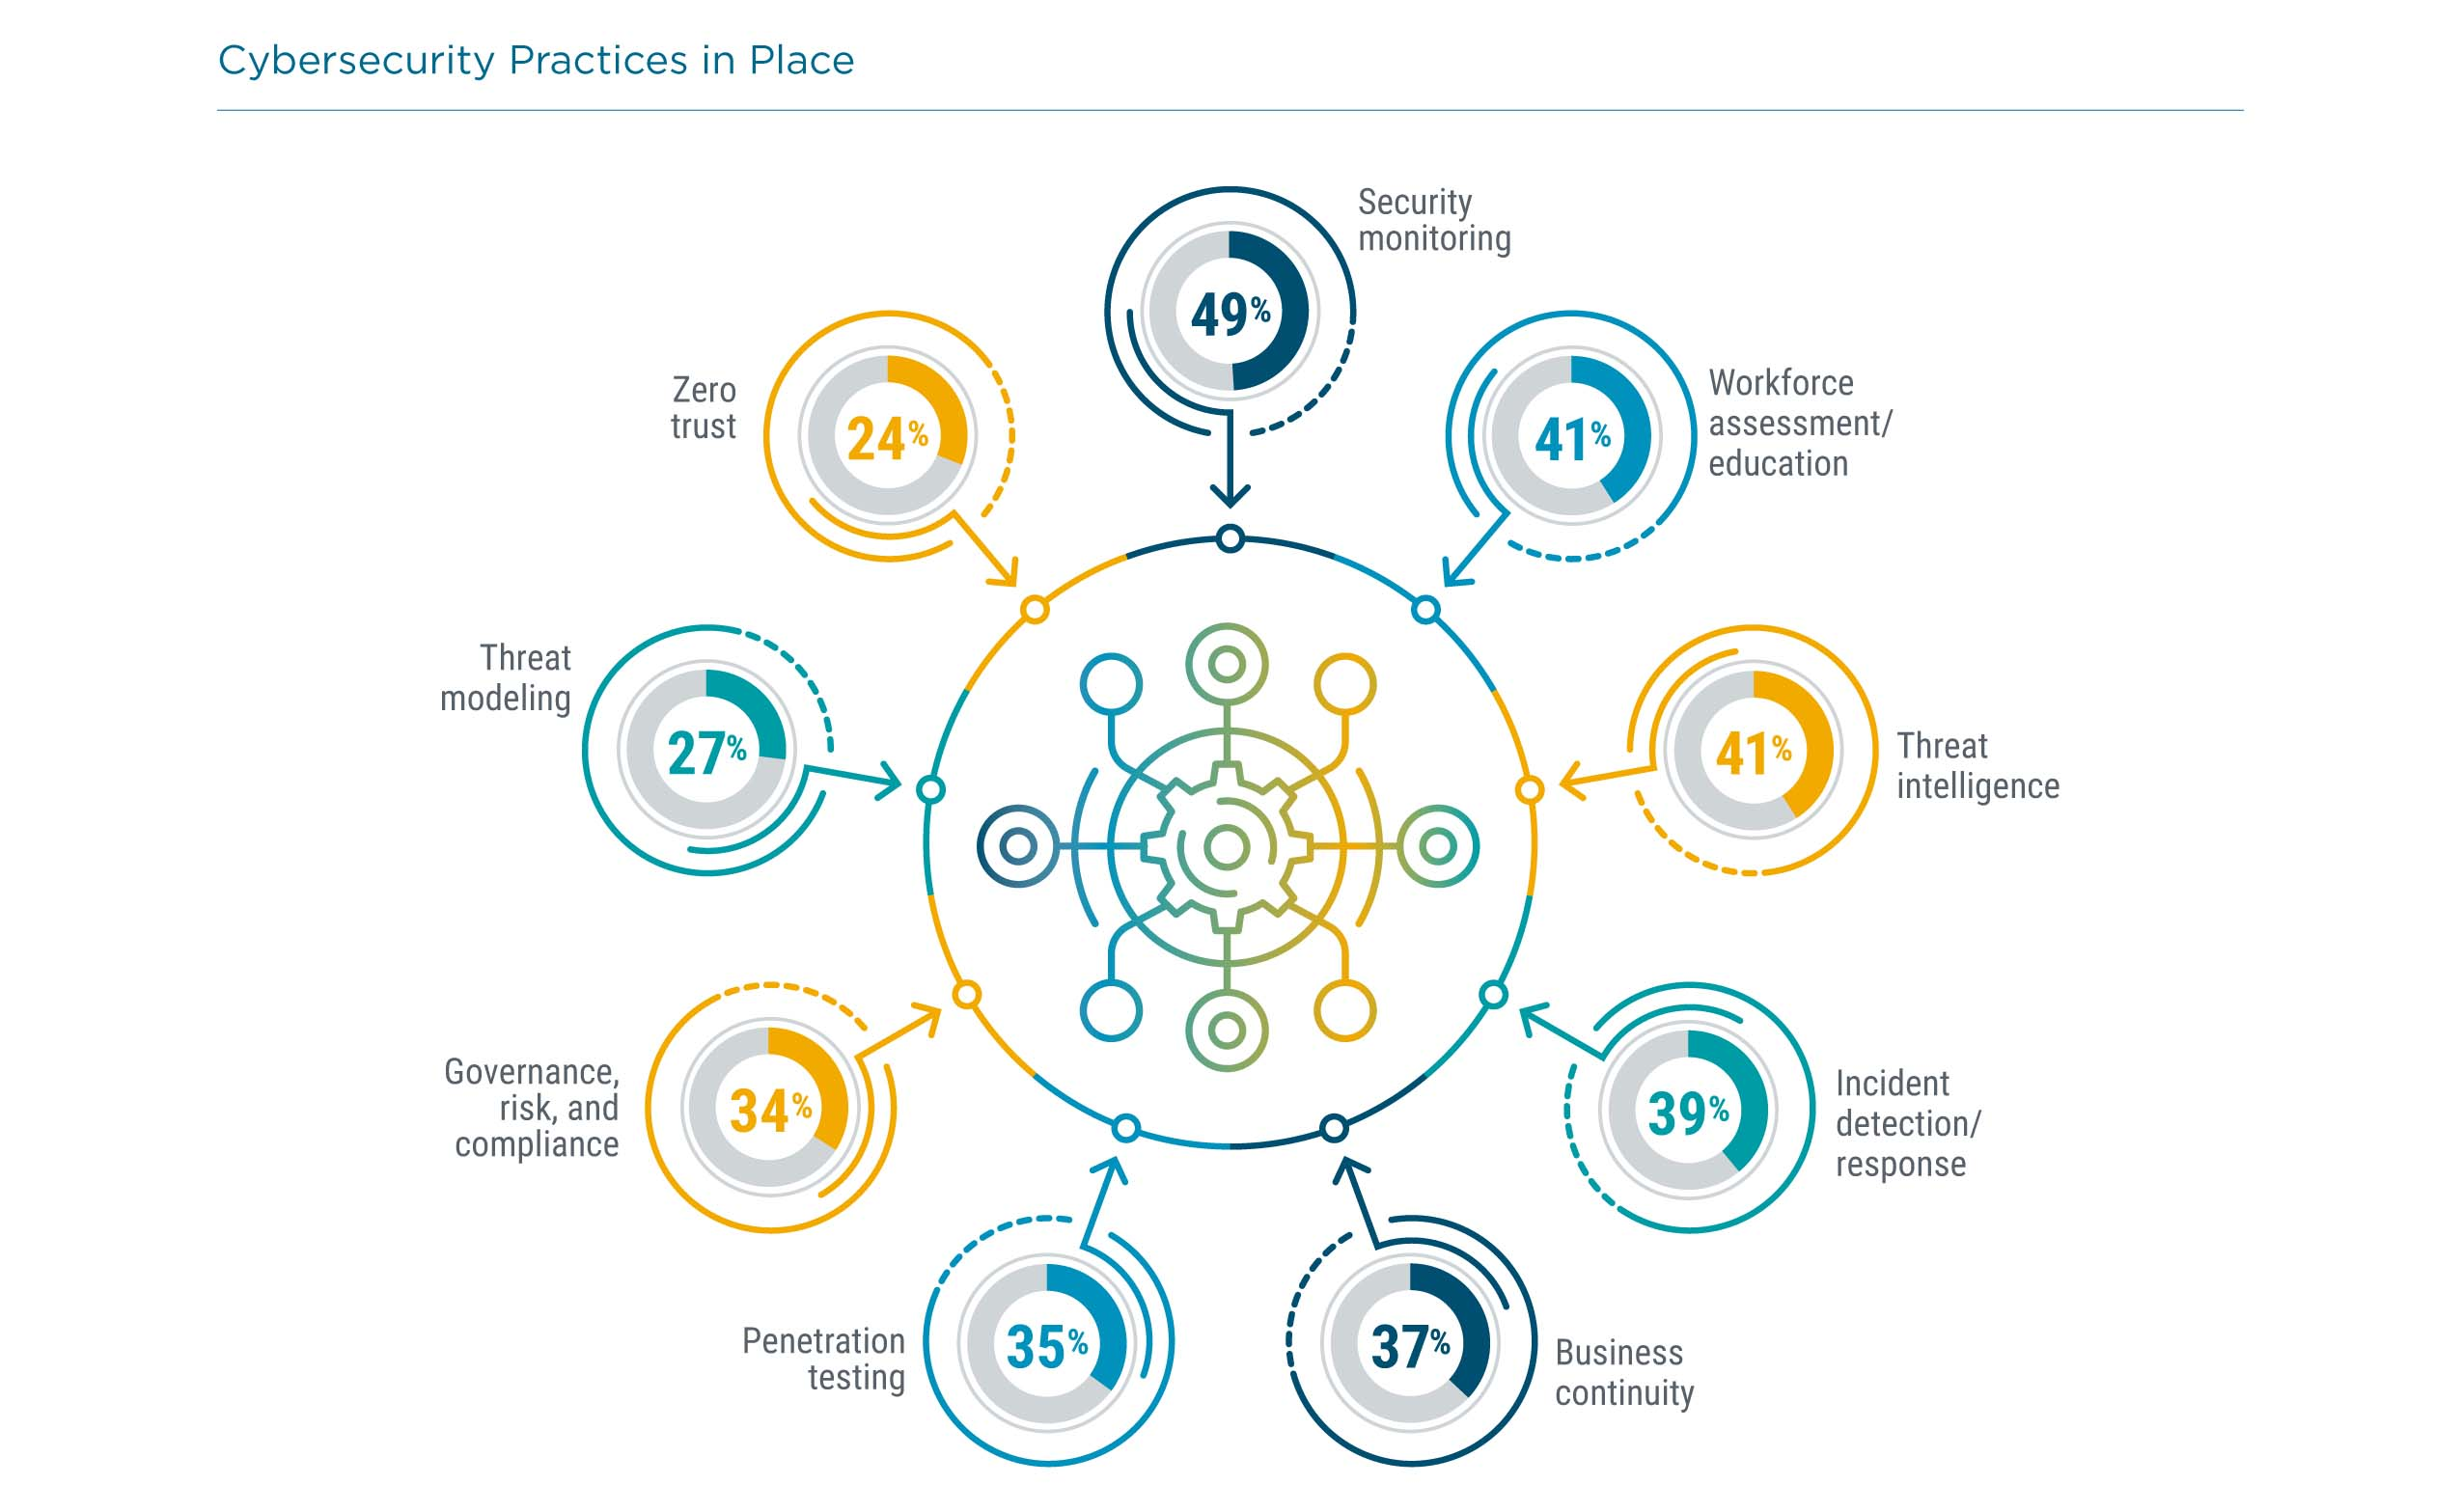 Cybersecurity Practices in Place